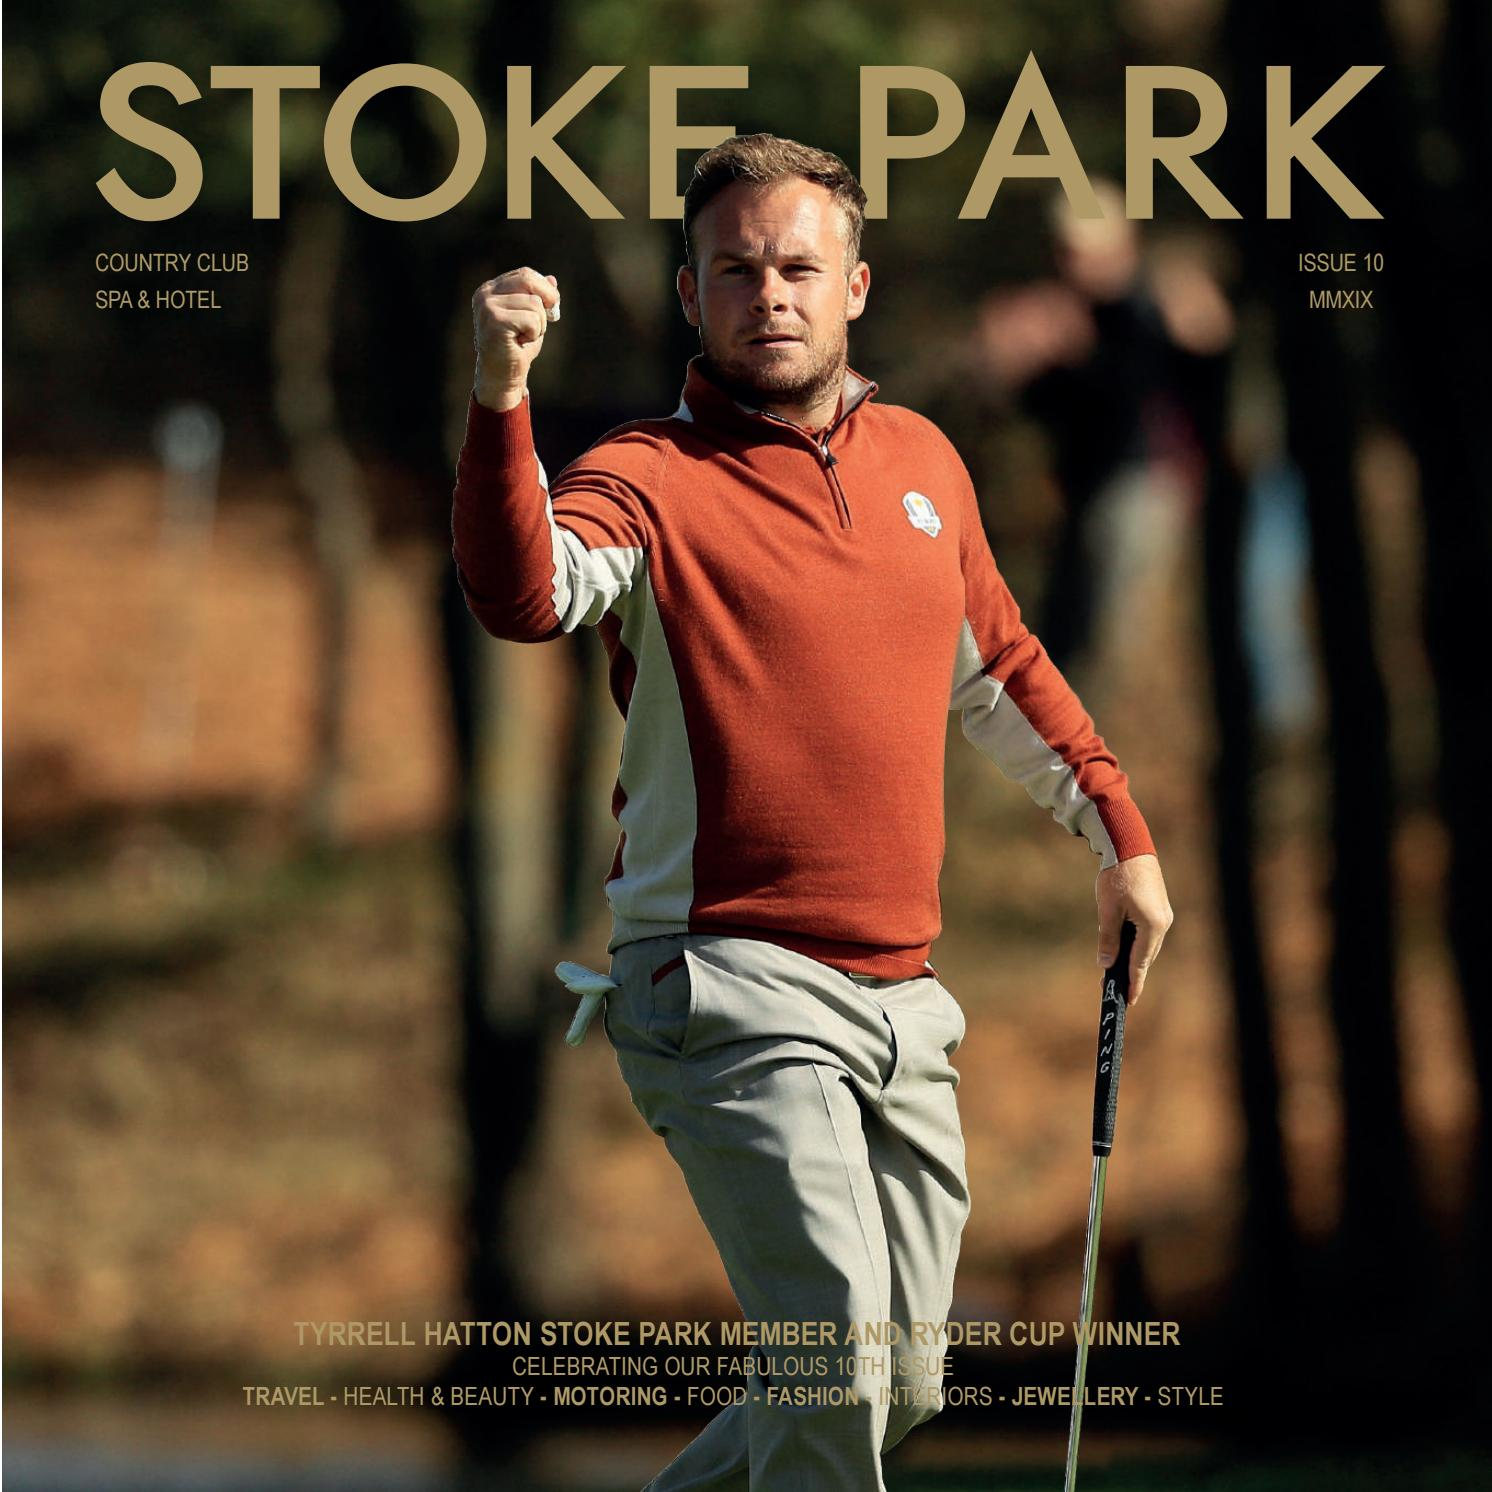 d1f435253 Stoke Park Magazine Issue 10 by Azzy Asghar - issuu